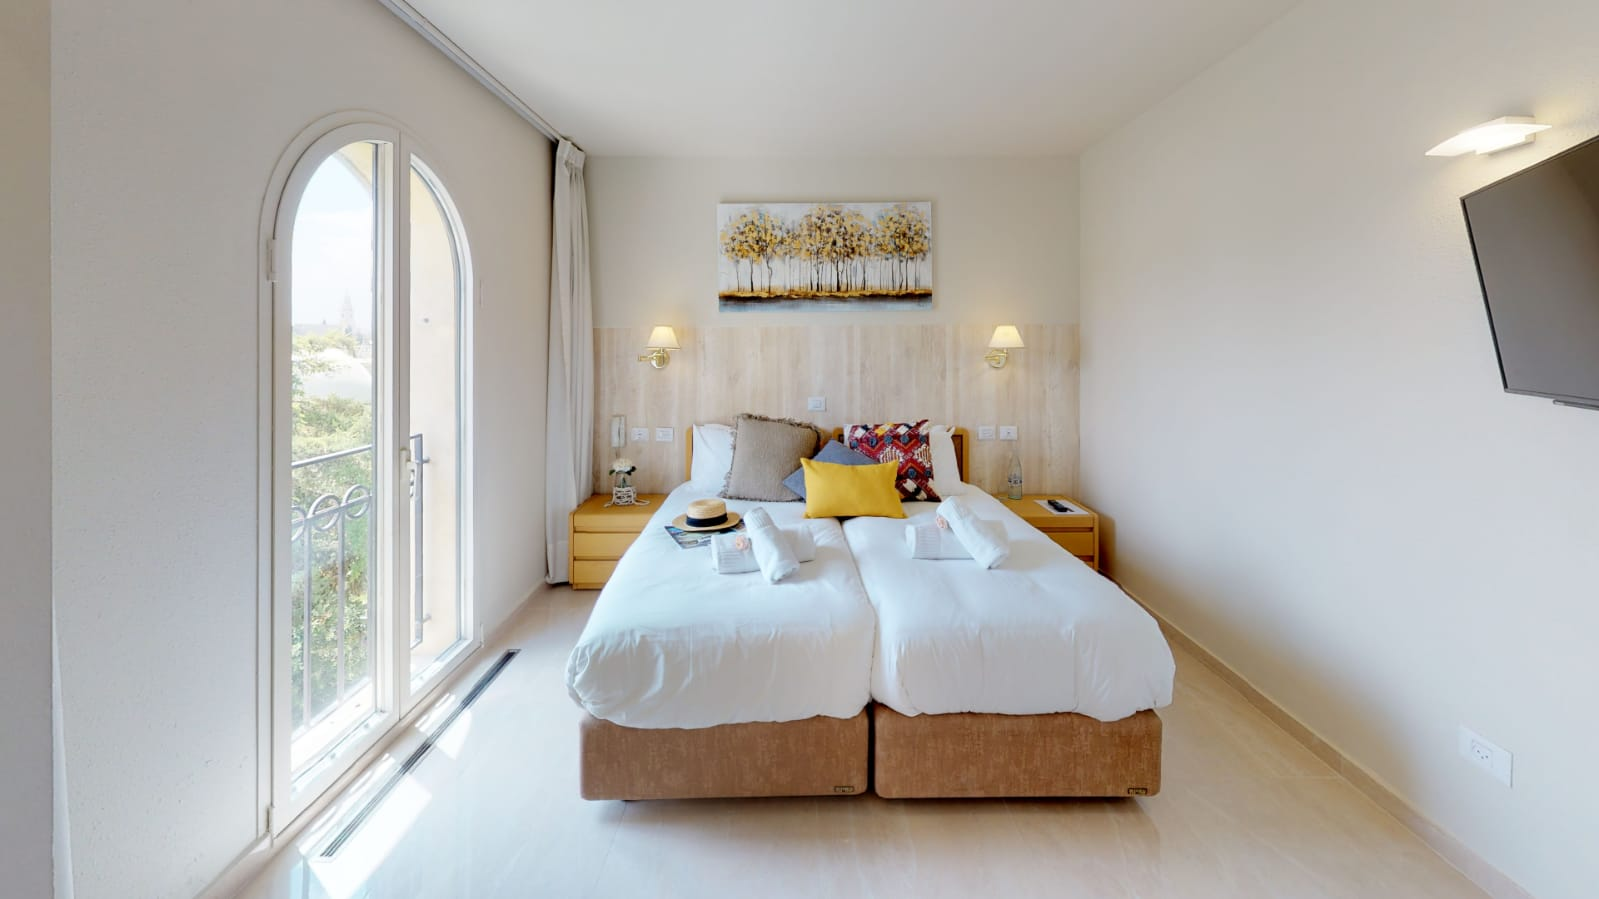 3.Old City views Luxury Mamilla 3 BR image #21